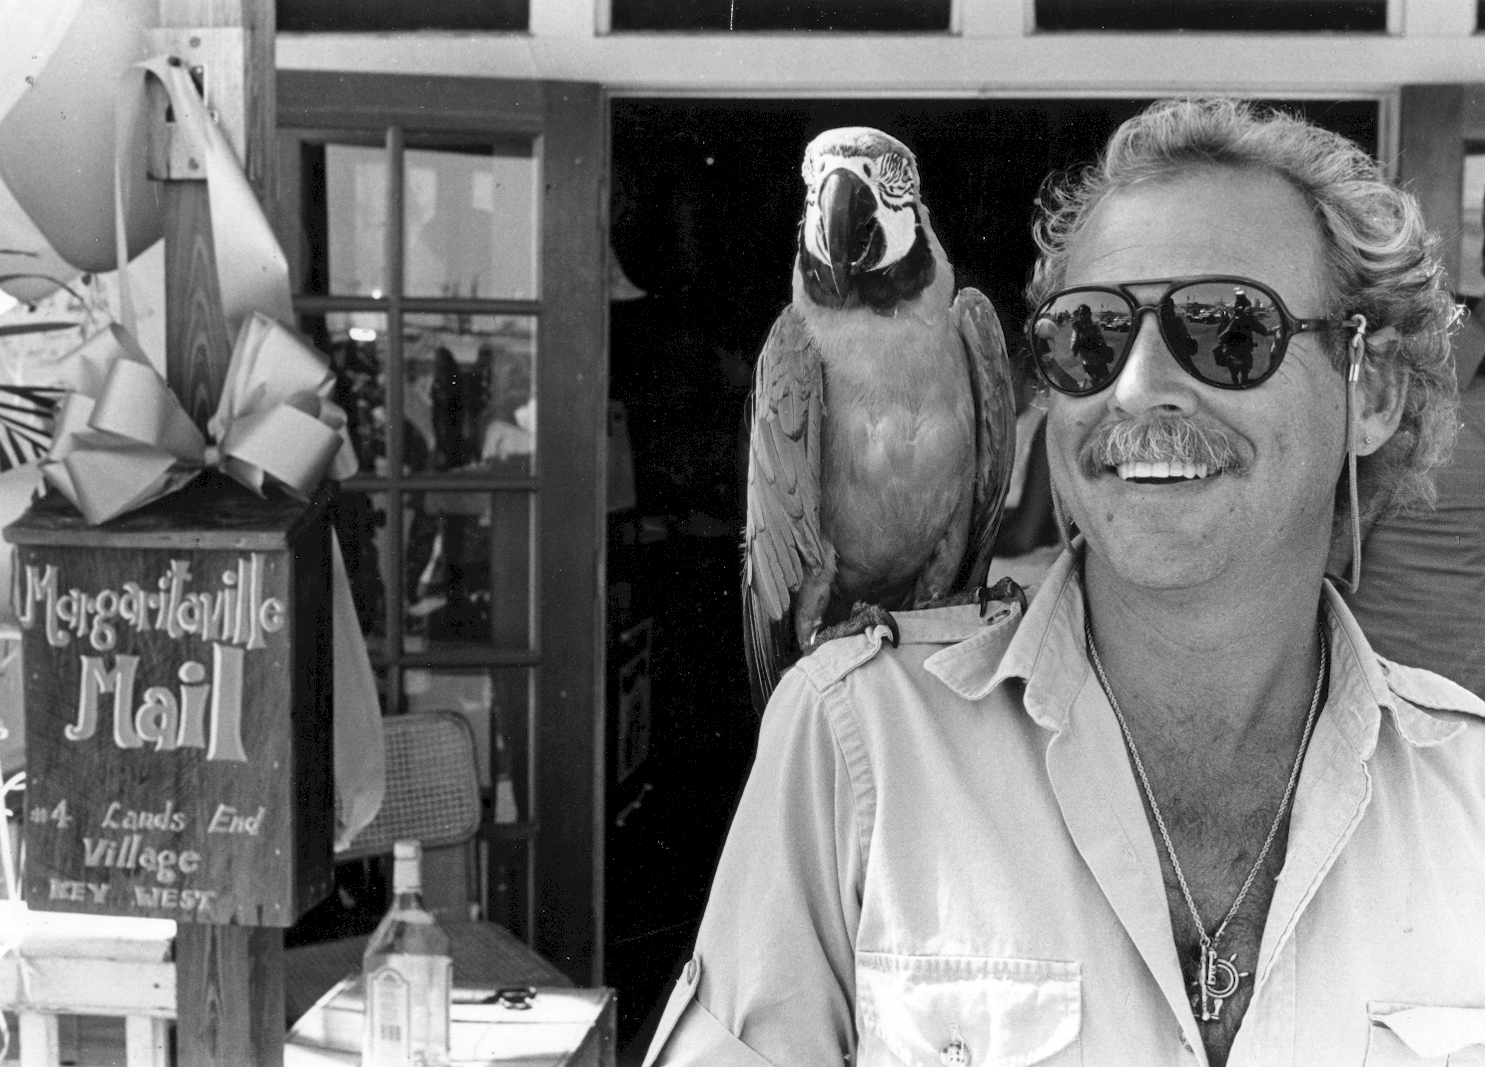 Black and White image of Jimmy Buffet standing outside a Key West novelty shop, smiling with open shirt and wearing large avaitor sunglass with a large parrot perched upon his right shoulder.